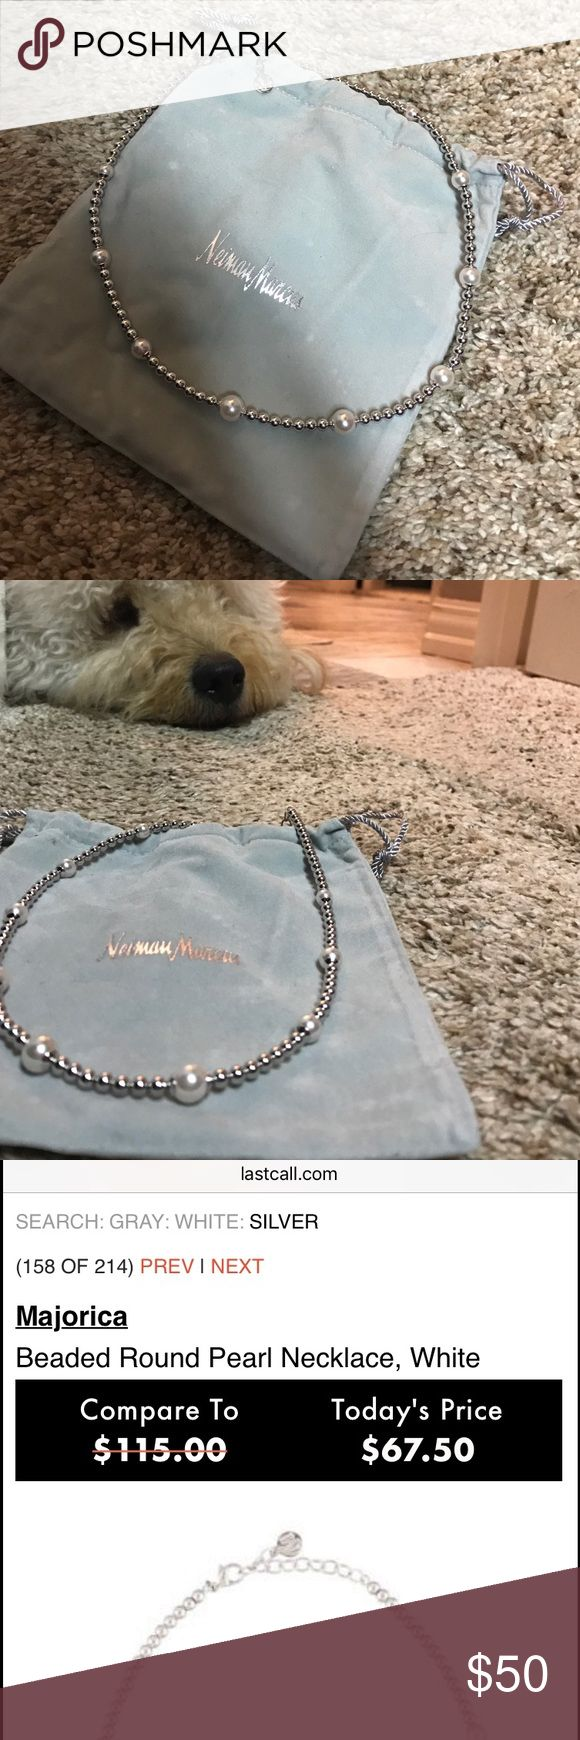 Neiman Marcus necklace.  Still online for over $. Neiman Marcus/ Majorca Chocker style sterling silver and fresh water pearl necklace.   Brand new never worn! Still selling online for $67.00.   I personally do not look good in chokers no matter how bad I want to! Neiman Marcus Jewelry Necklaces